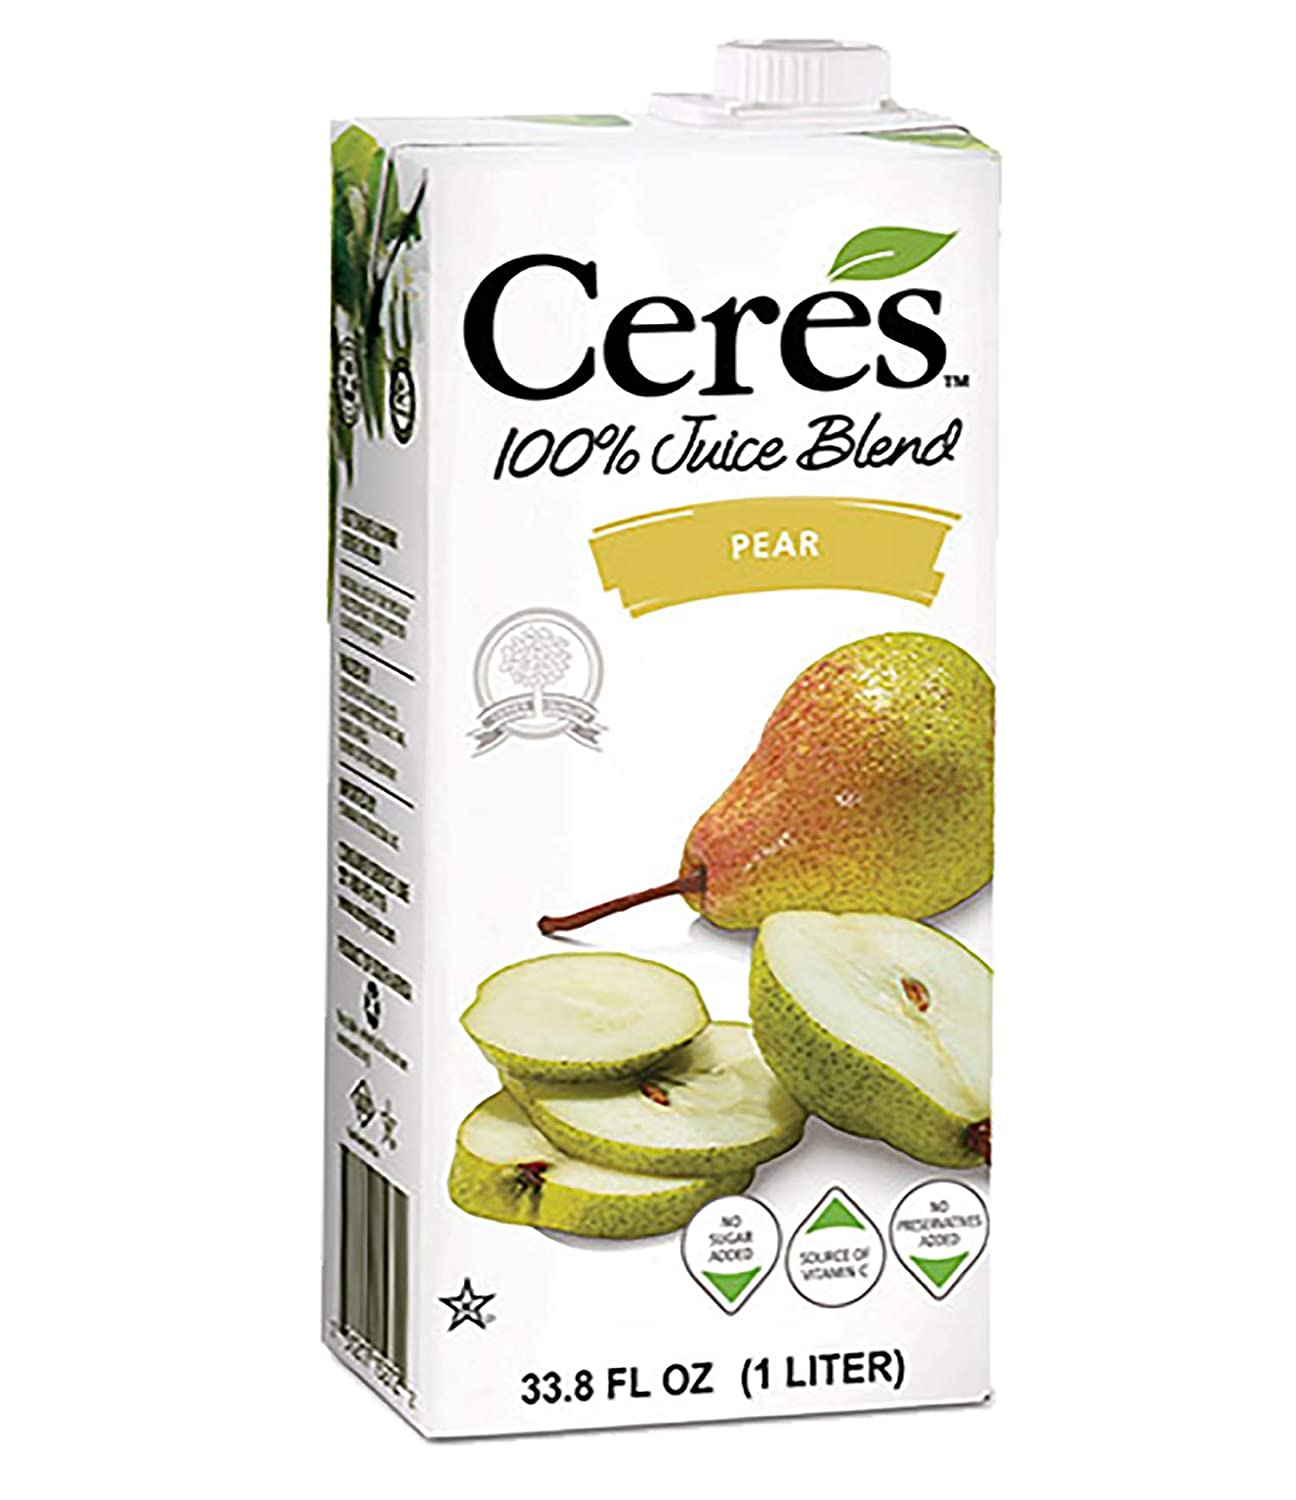 Ceres 100% All Natural Pure Fruit Juice Blend - Gluten Free, Rich in Vitamin C, No Sugar or Preservatives Added - 33.8 FL OZ, Pear (Pack of 12)